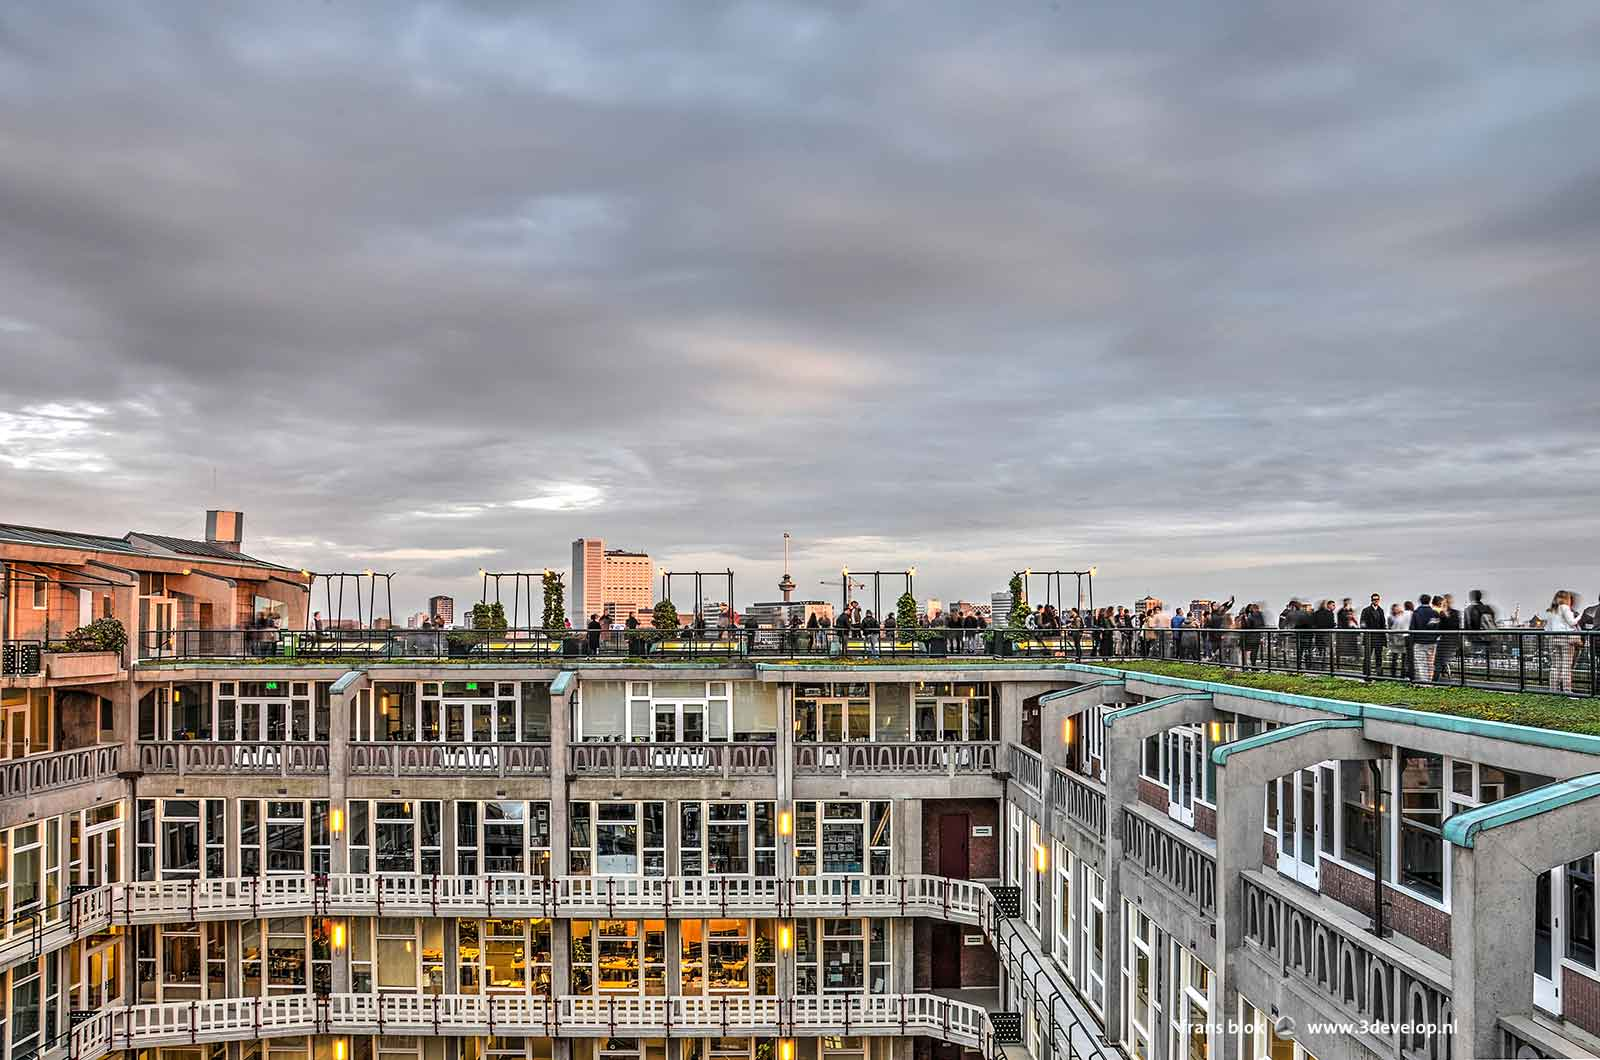 Visitors admire the skyline of Rotterdam from the roof of the Groothandelsgebouw, with in the foreground one of the courtyards of Maaskant's monument from the reconstruction era